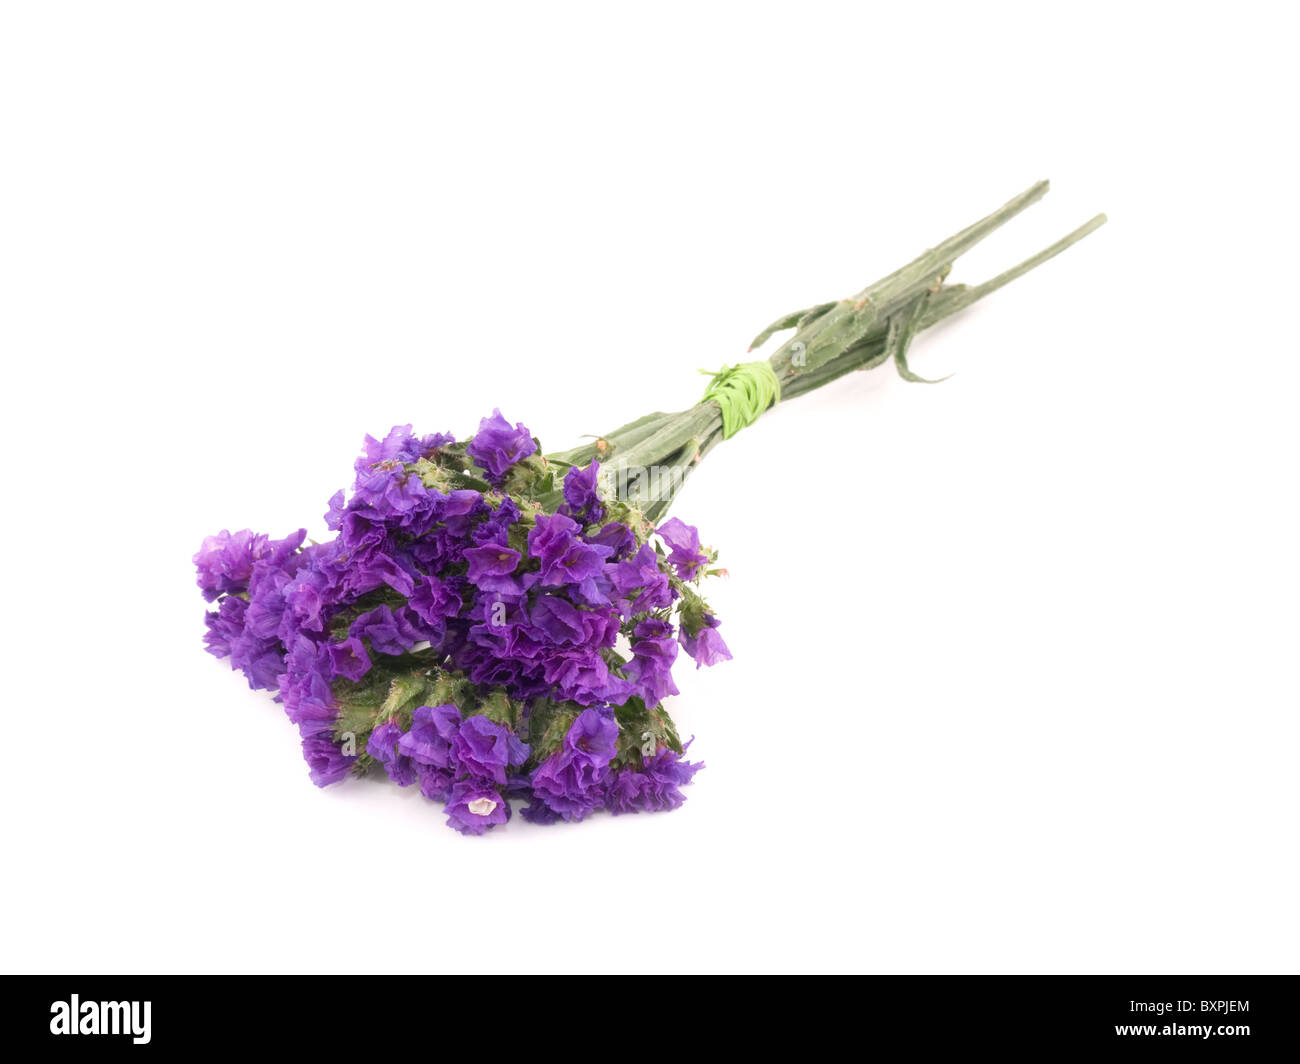 Statice flower stock photos statice flower stock images alamy small bouquet of purple statice flowers on white background stock image mightylinksfo